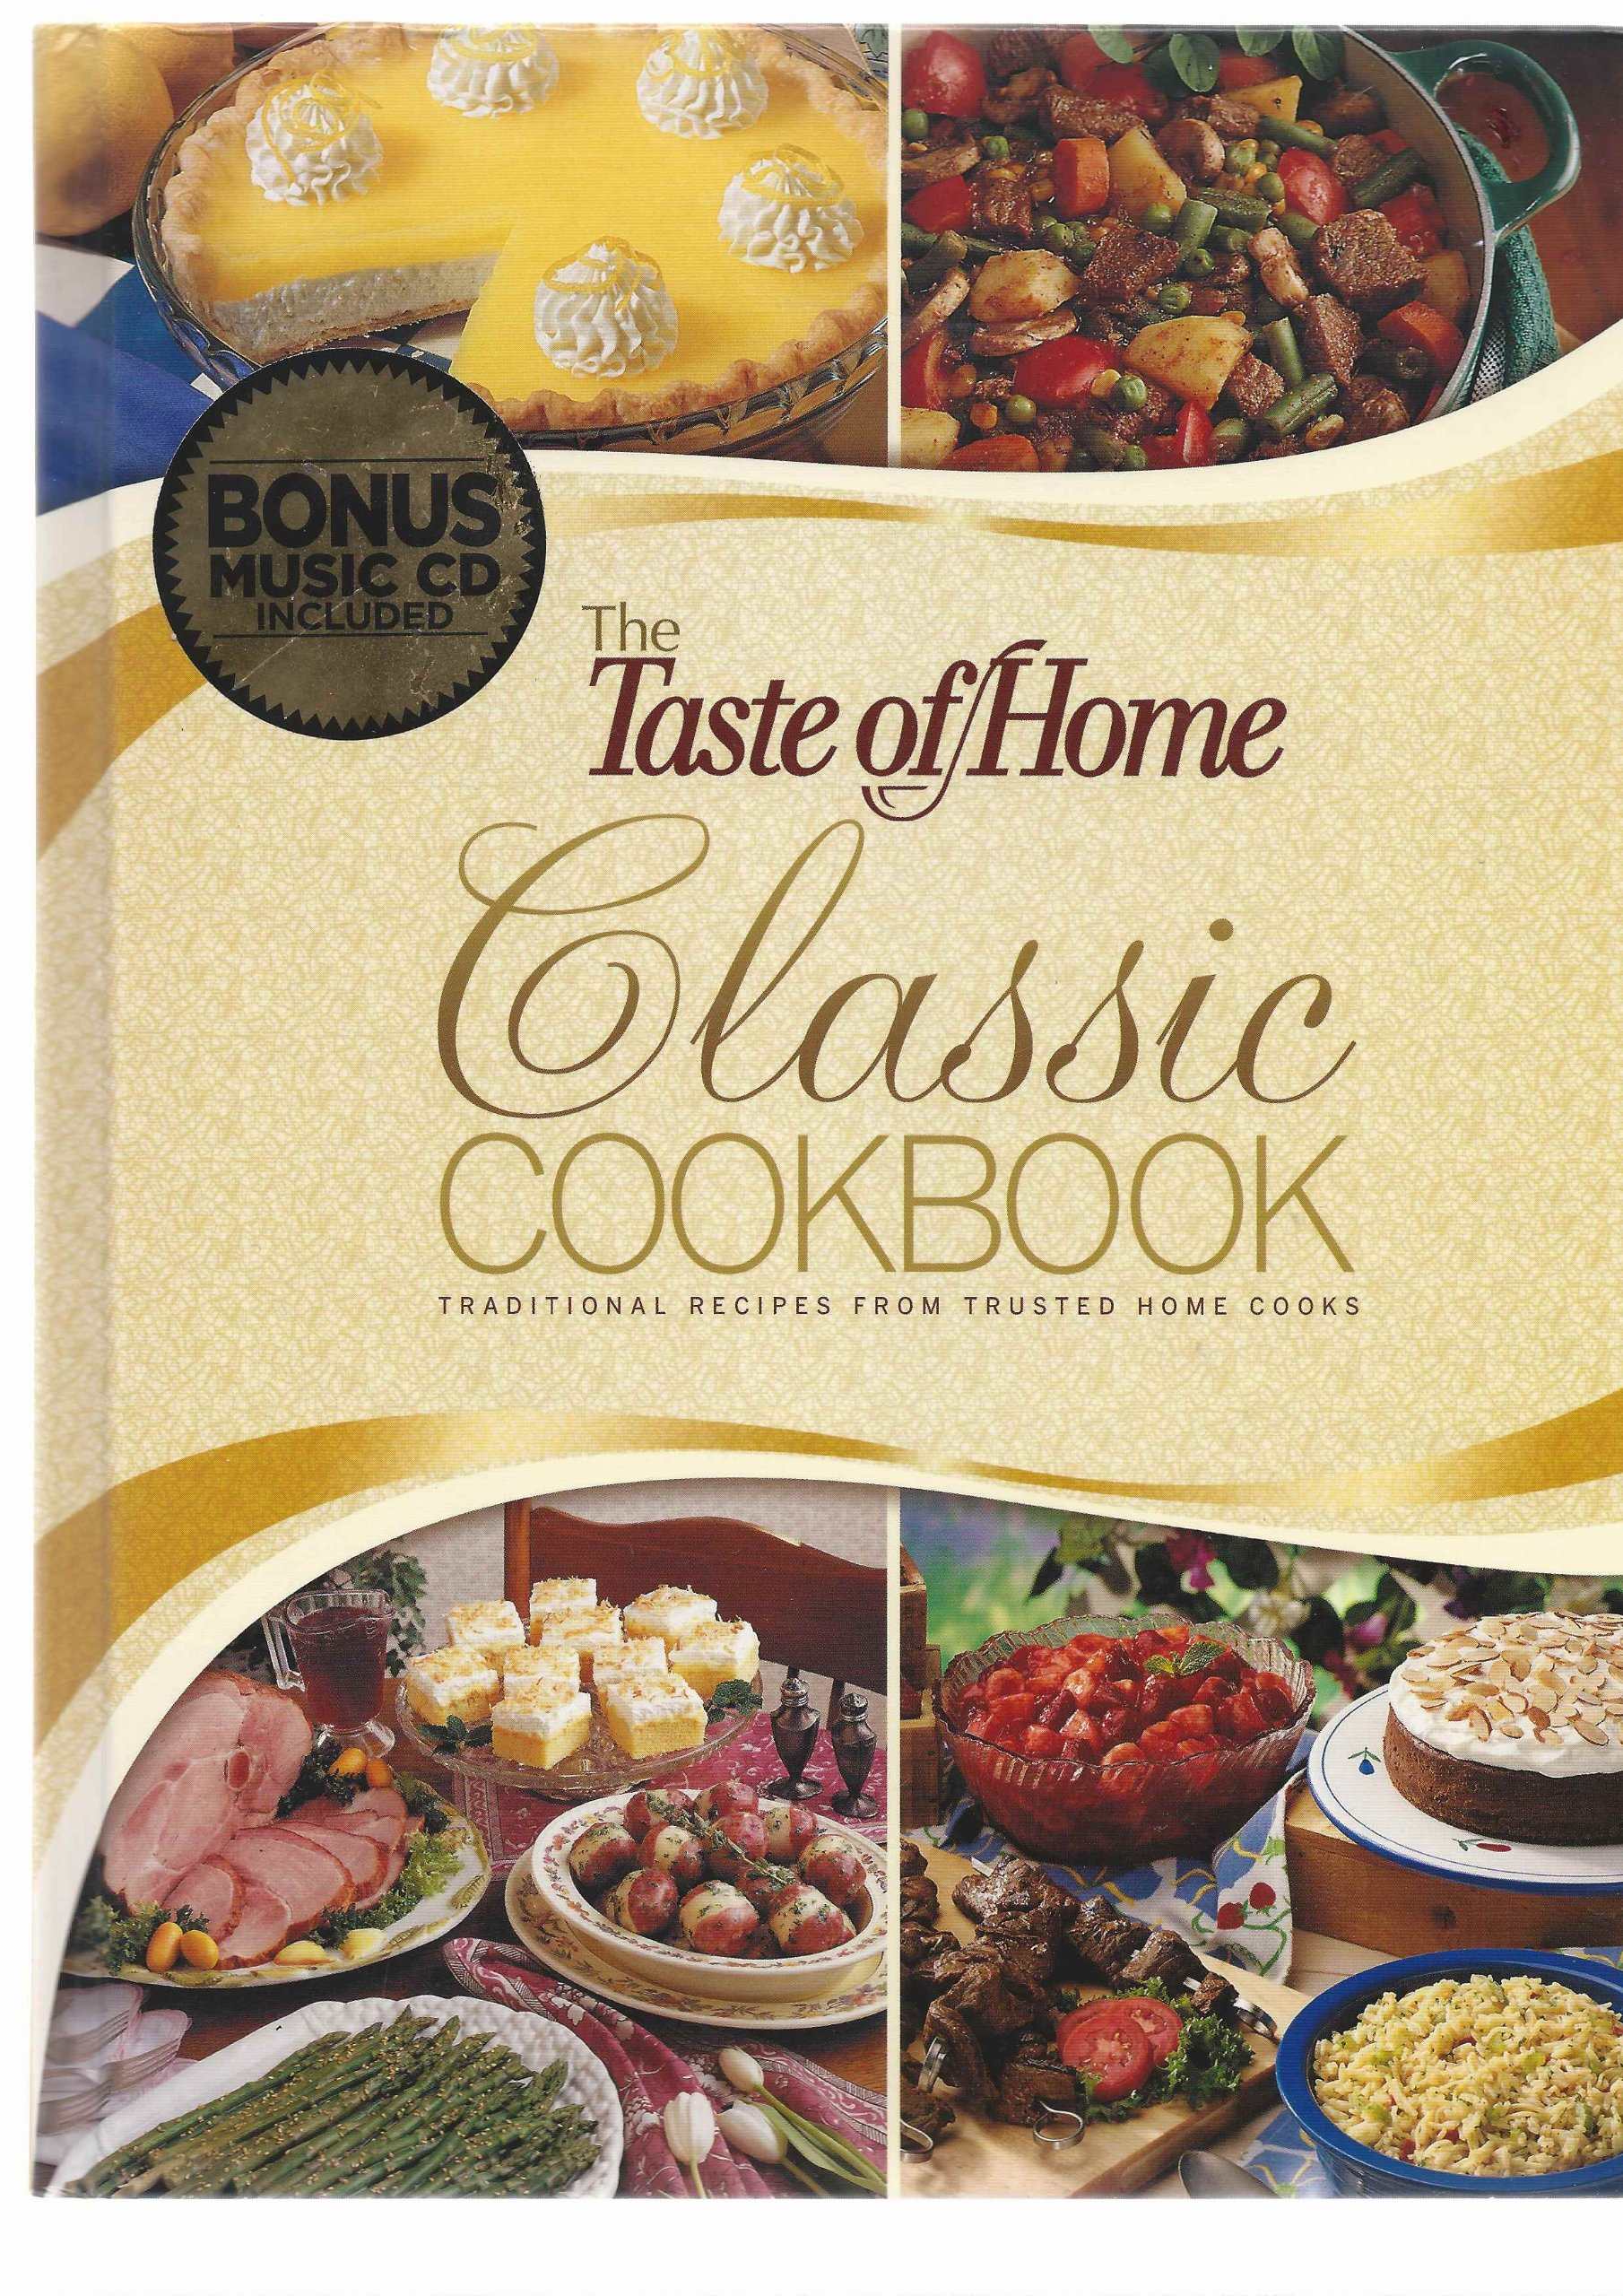 The Taste of Home Classic Cookbook (traditional recipes from trusted home cooks) ebook